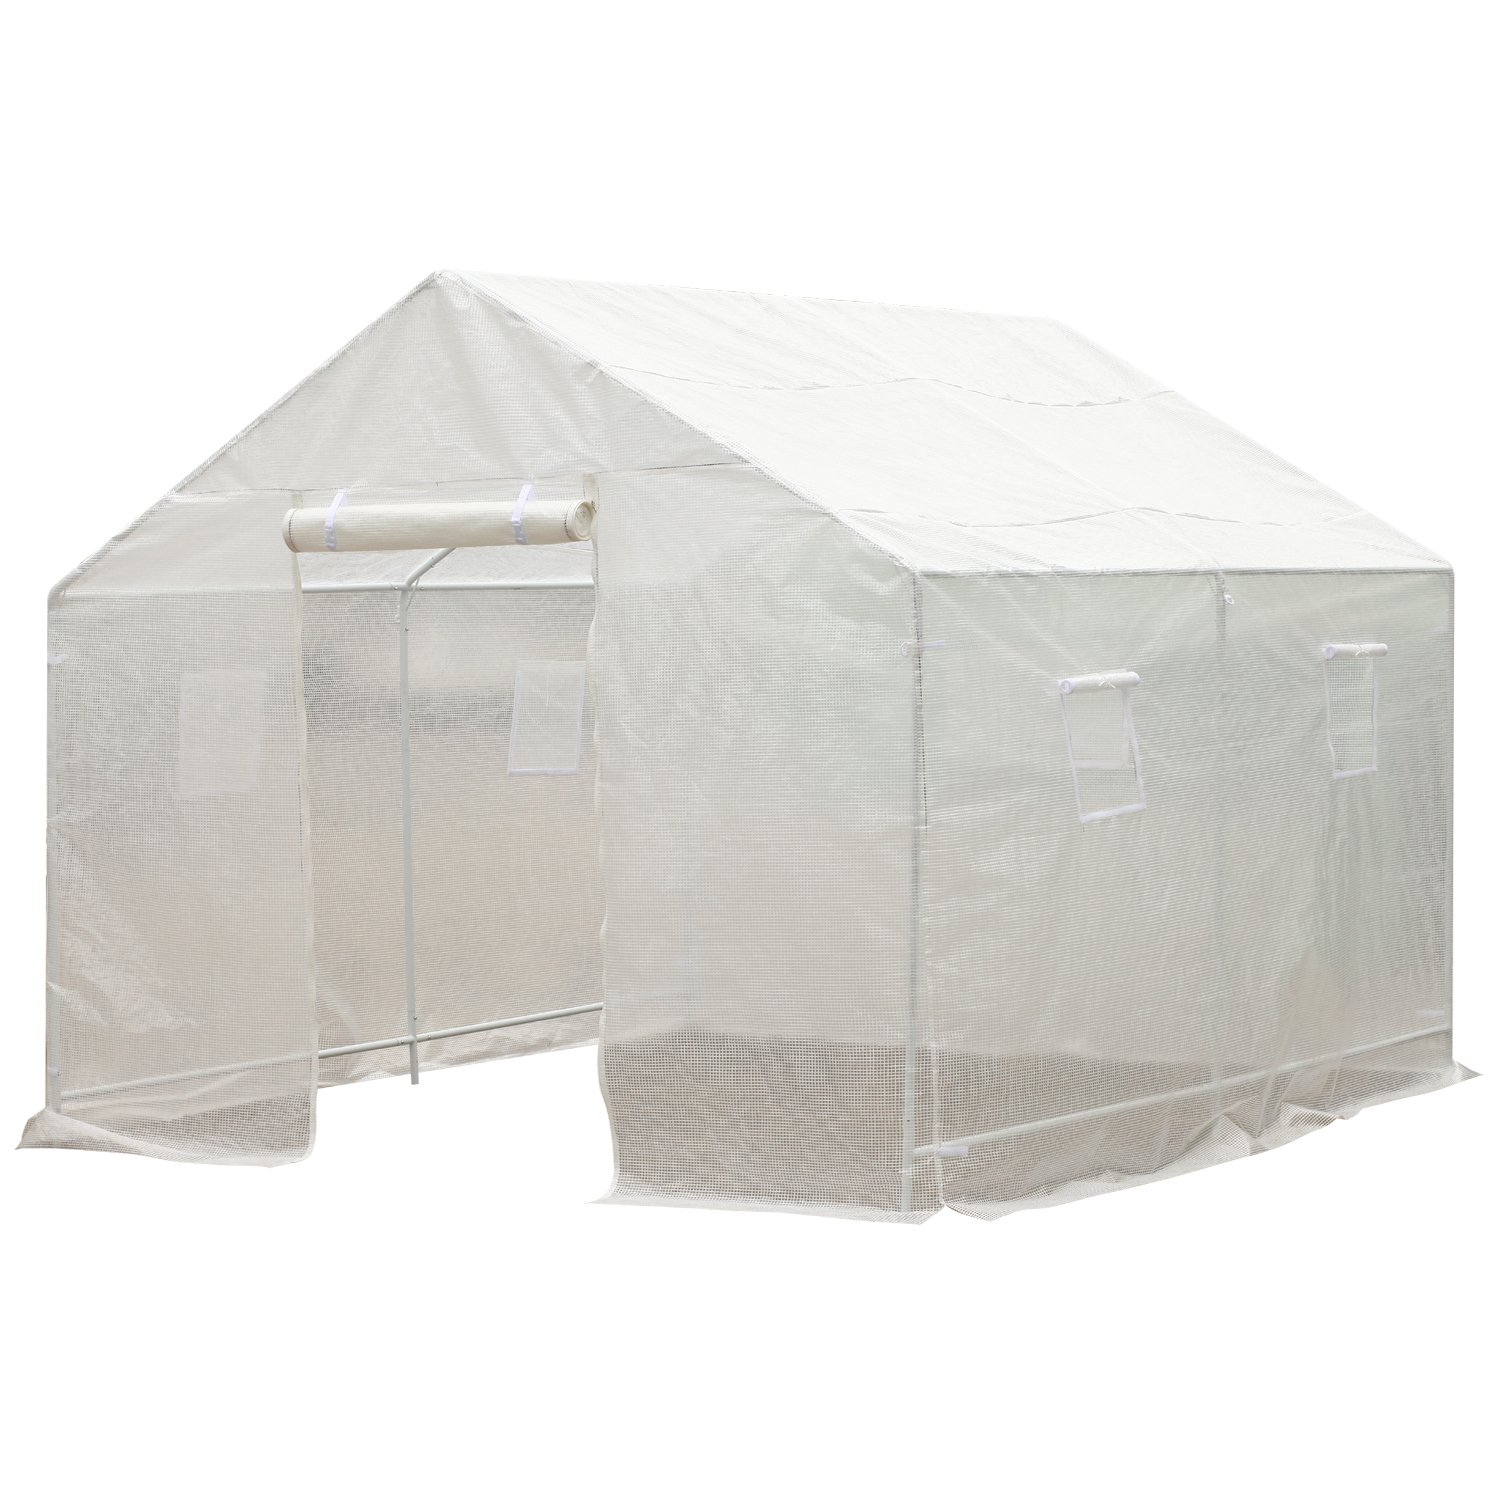 Outsunny 10' x 9.5' x 8' Outdoor Ventilated Portable Walk-In Greenhouse w/ White PE Cover